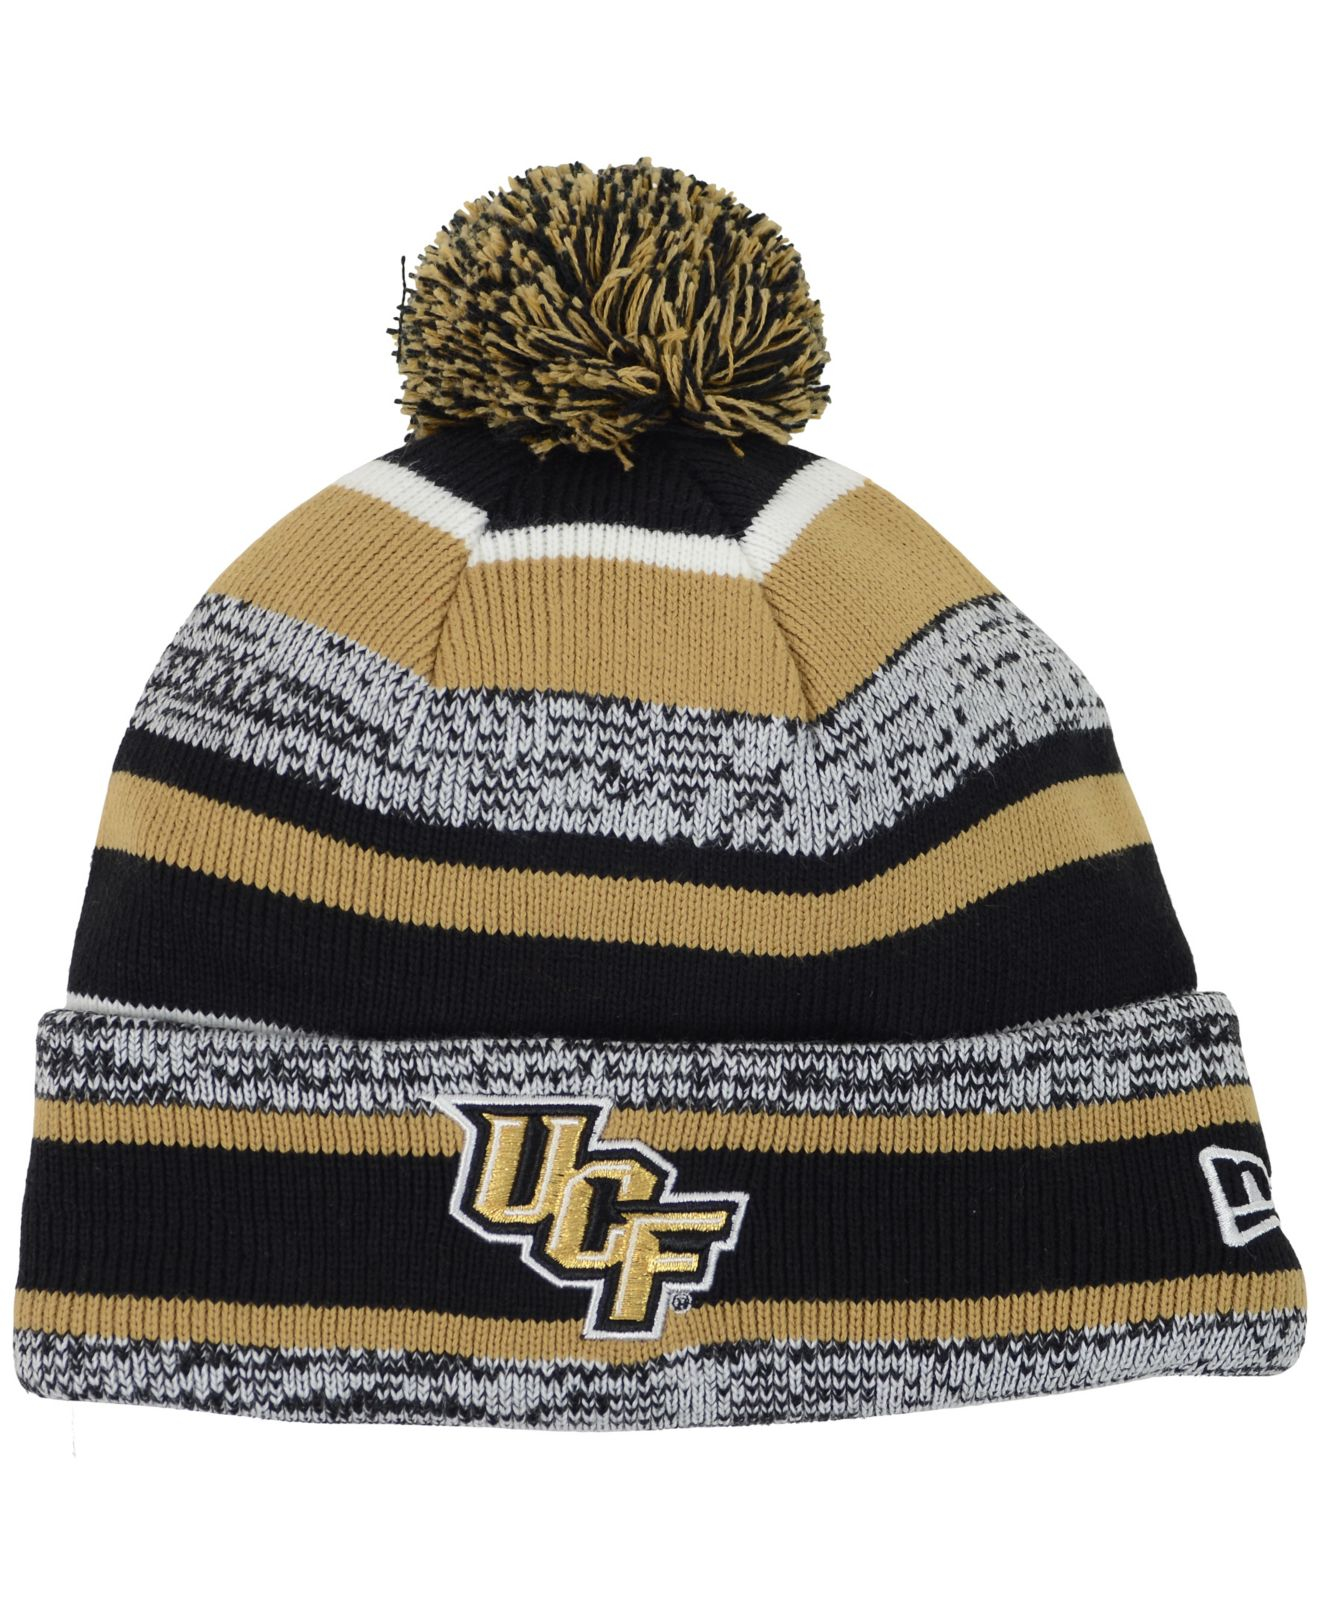 on sale c75b7 f009c ... wholesale lyst ktz ucf knights sport knit hat in black for men dc682  e08e4